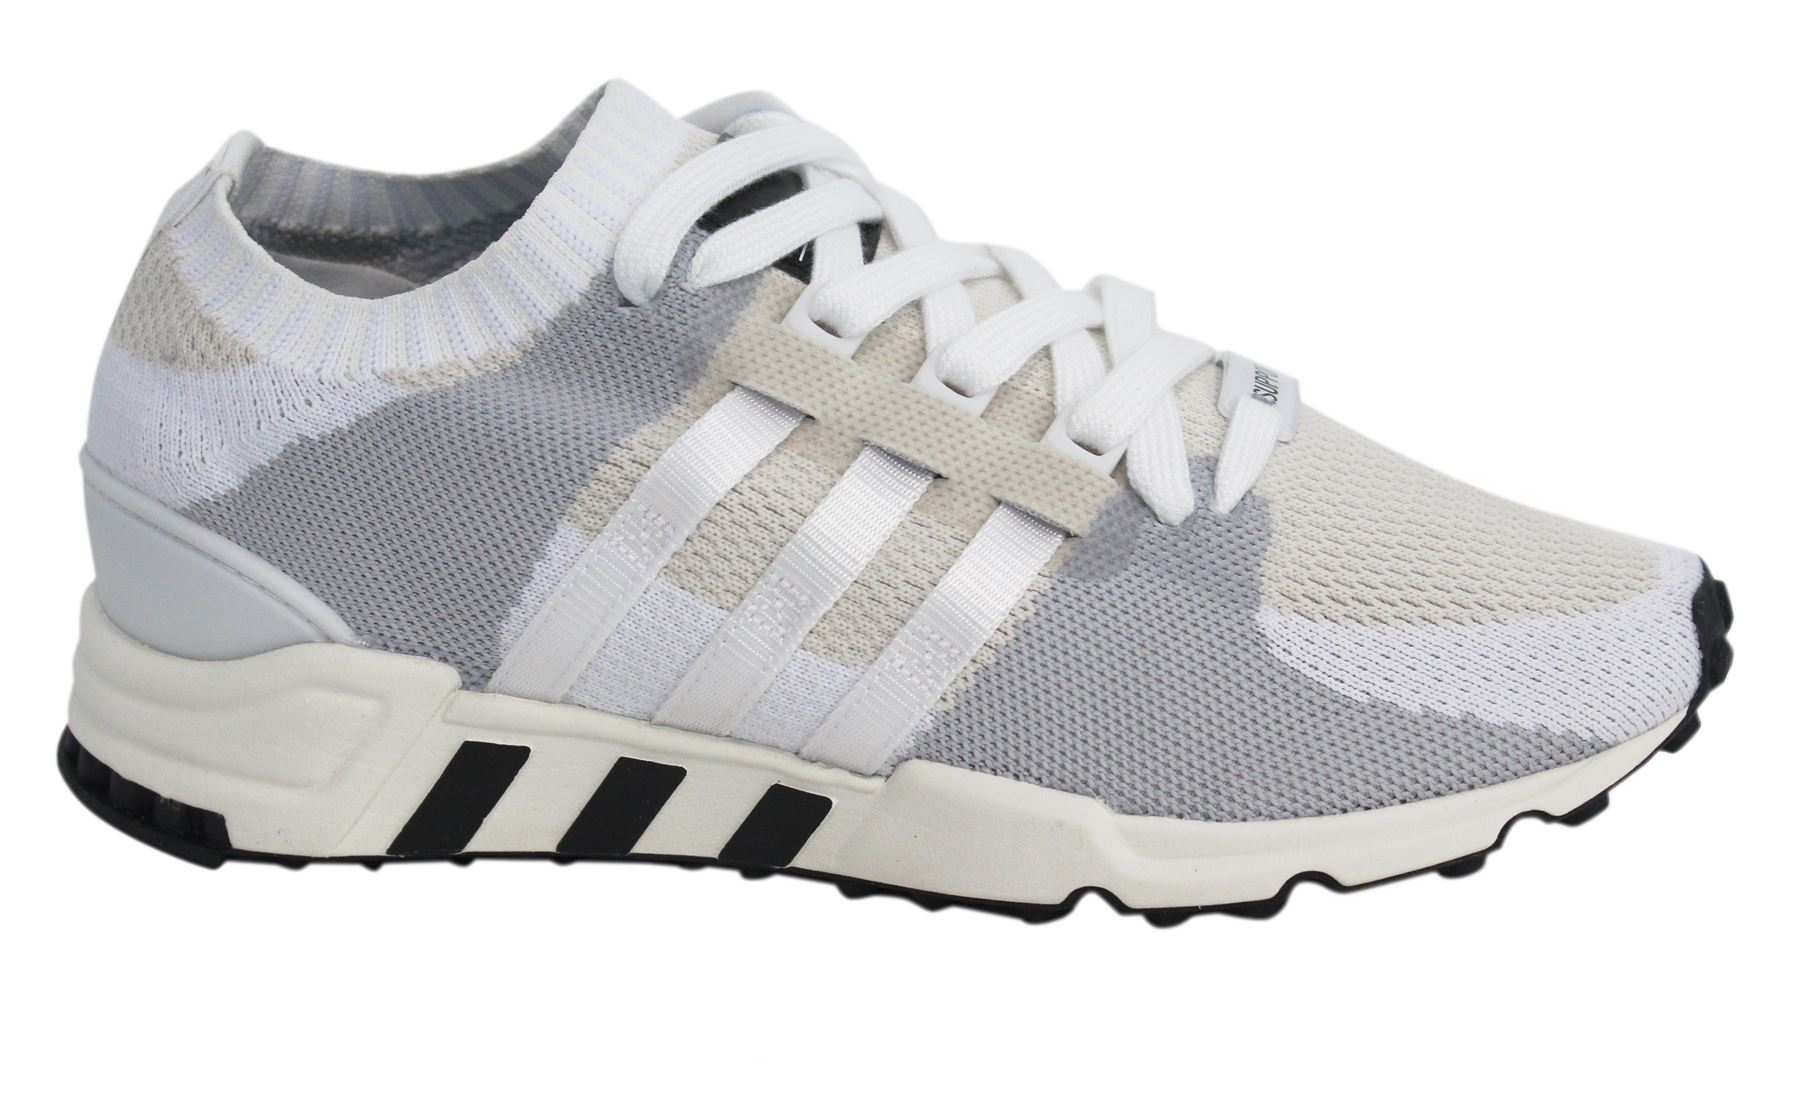 best loved 505b8 34afc Details about Adidas Eqt Support RF PK Lace Up White Silver Mens Textile  Trainers BA7507 D49